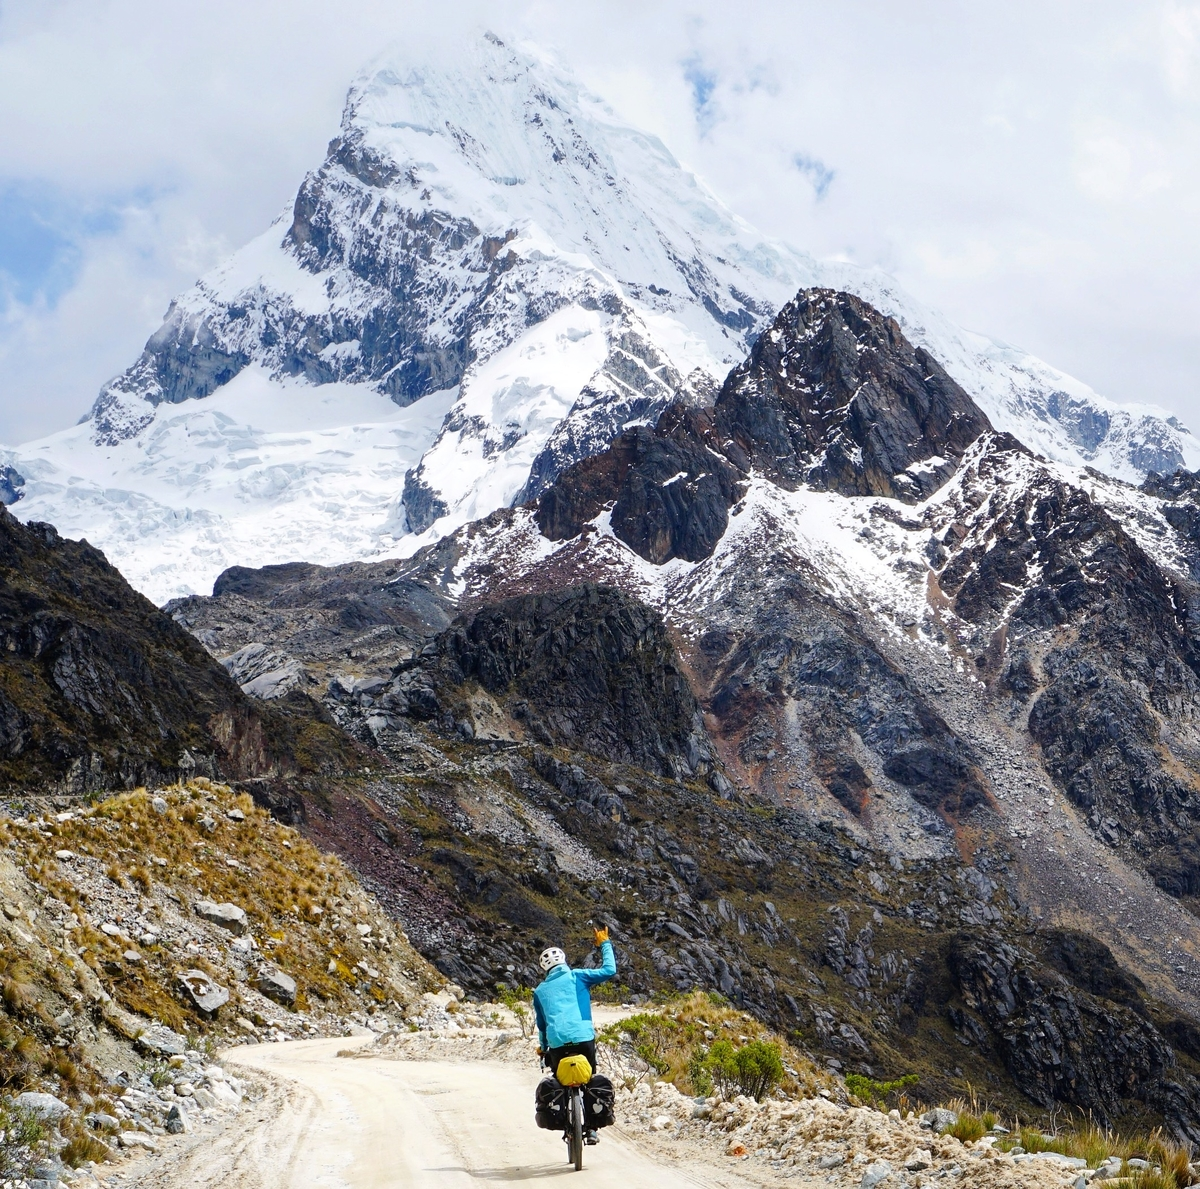 Biking near Mendoza, Argentina. Photo: The Spoken Tour